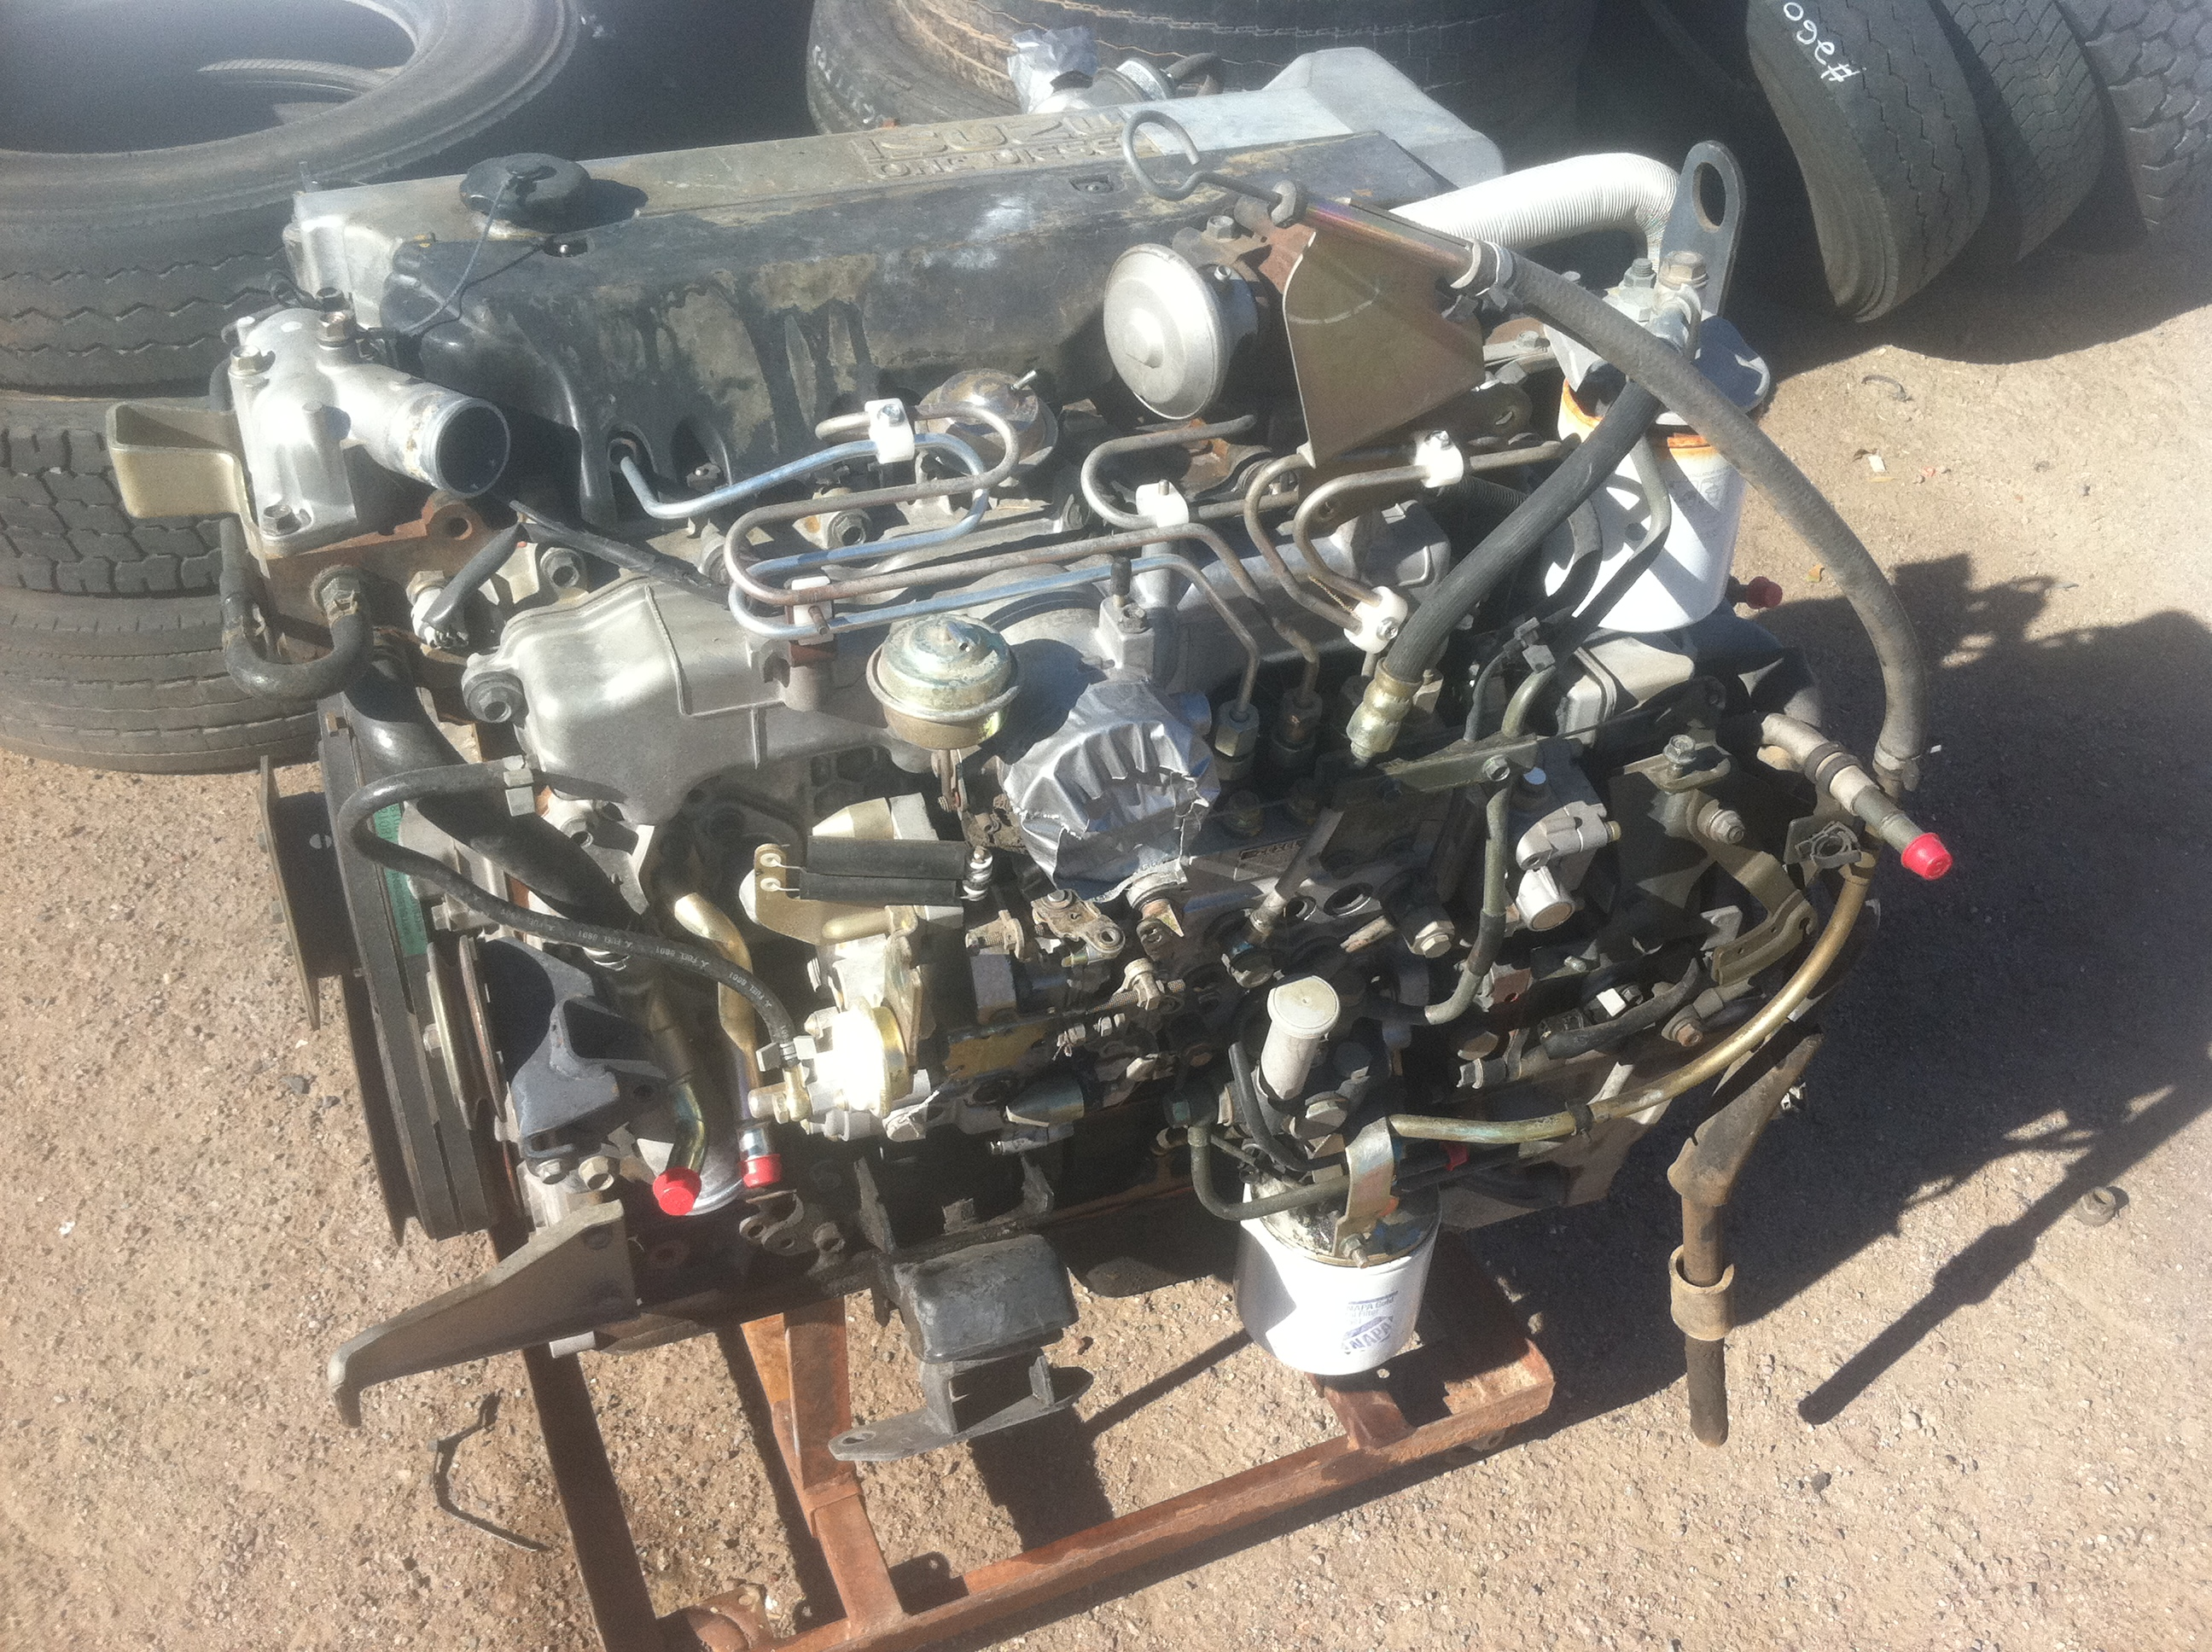 isuzu 4he1 turbo diesel engine fits 1998 2004 npr  nqr  gm w3500 4500   5500 cab over trucks Isuzu Amigo Isuzu Amigo